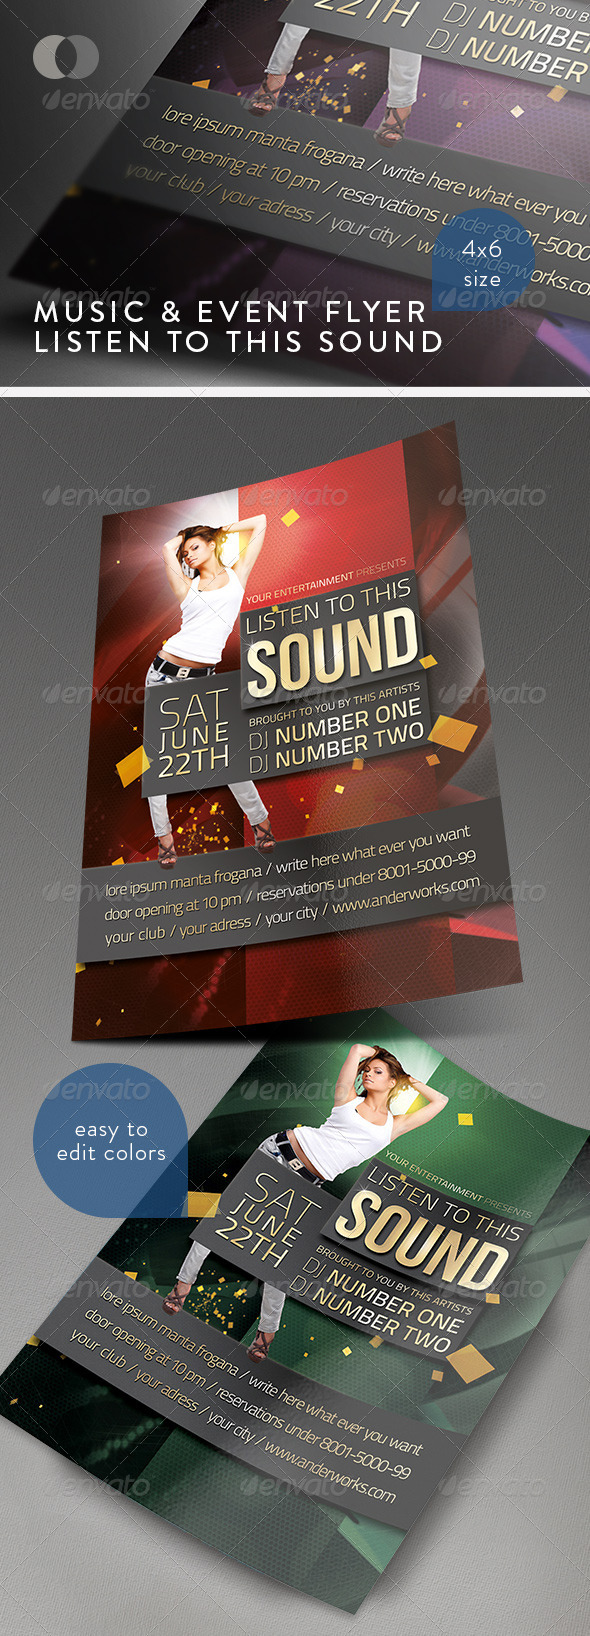 Music & Event Flyer - Listen to this Sound - Clubs & Parties Events